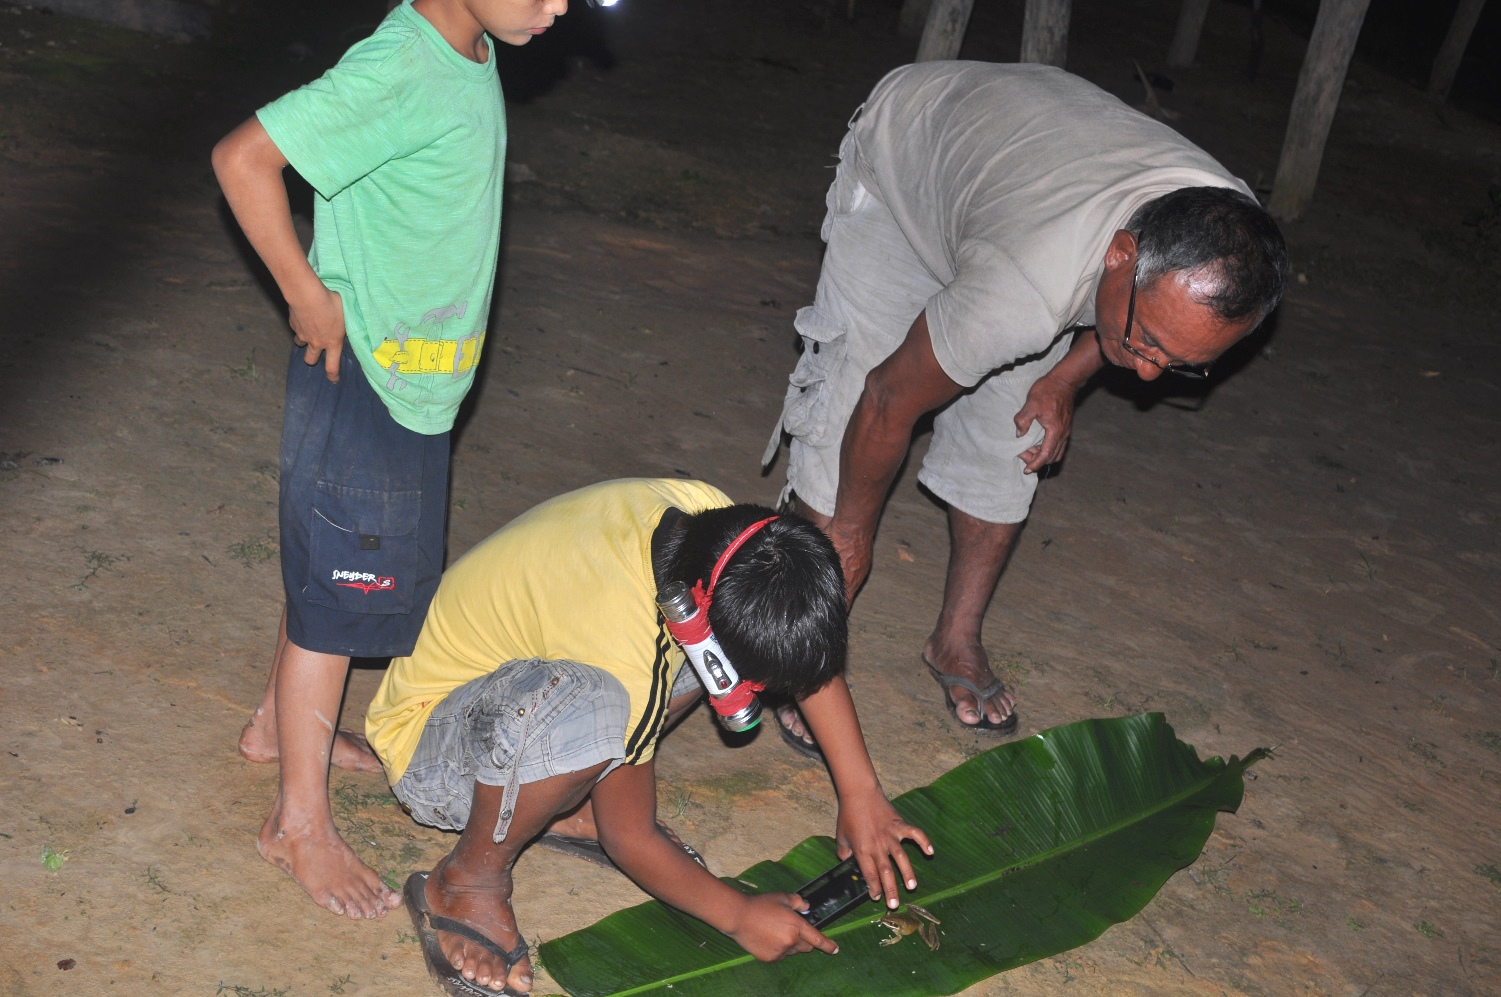 Antonio Jiménez supervising his young teammates on collection and photography of a local frog / toad.